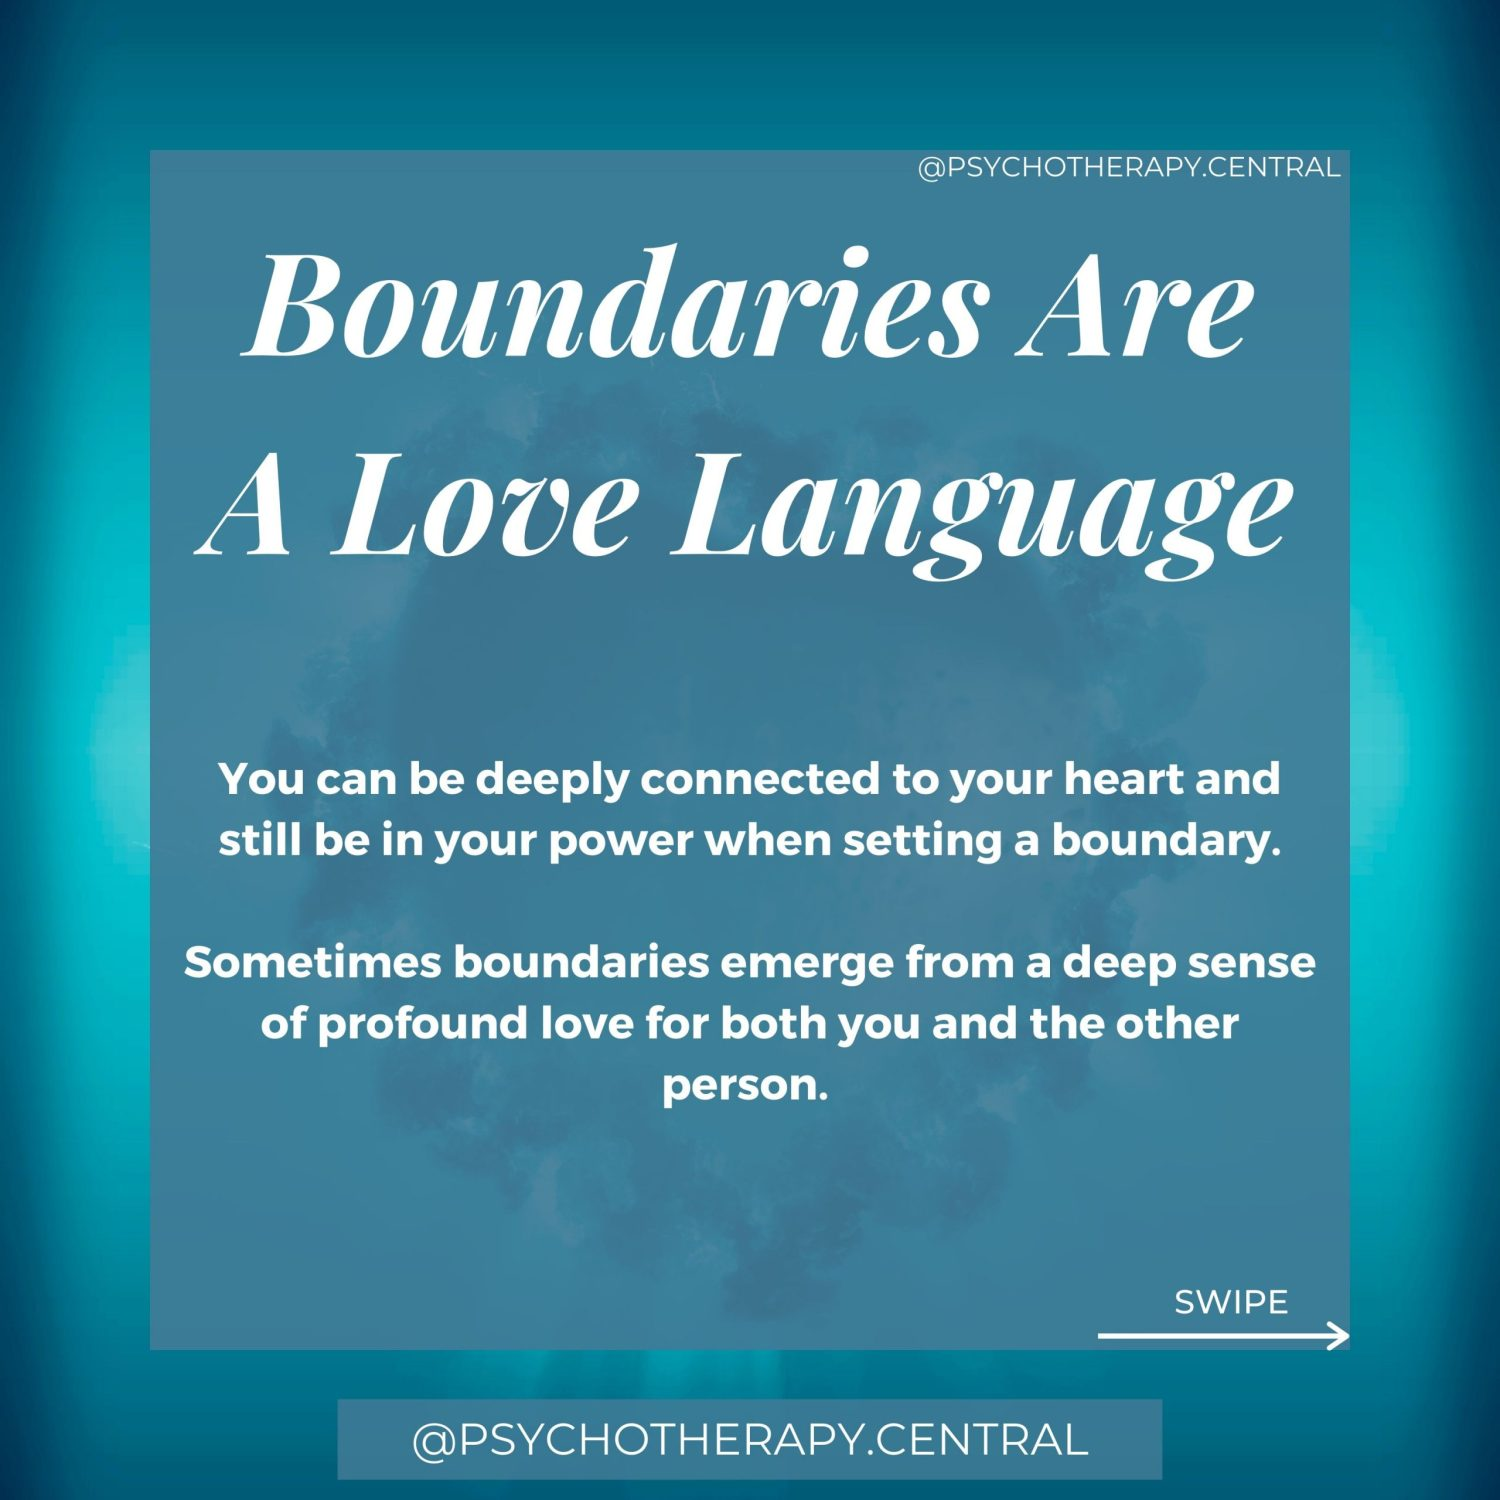 Boundaries are a love language. You can be deeply connected to your heart and still be in your power when setting a boundary. Sometimes boundaries emerge from a deep sense of profound love for both you and the other person. You just can't carry on in the way you have been. Something needs to change. Boundaries are hard if we have been taught that boundaries mean we don't love each other. Remember, boundaries are a love language.